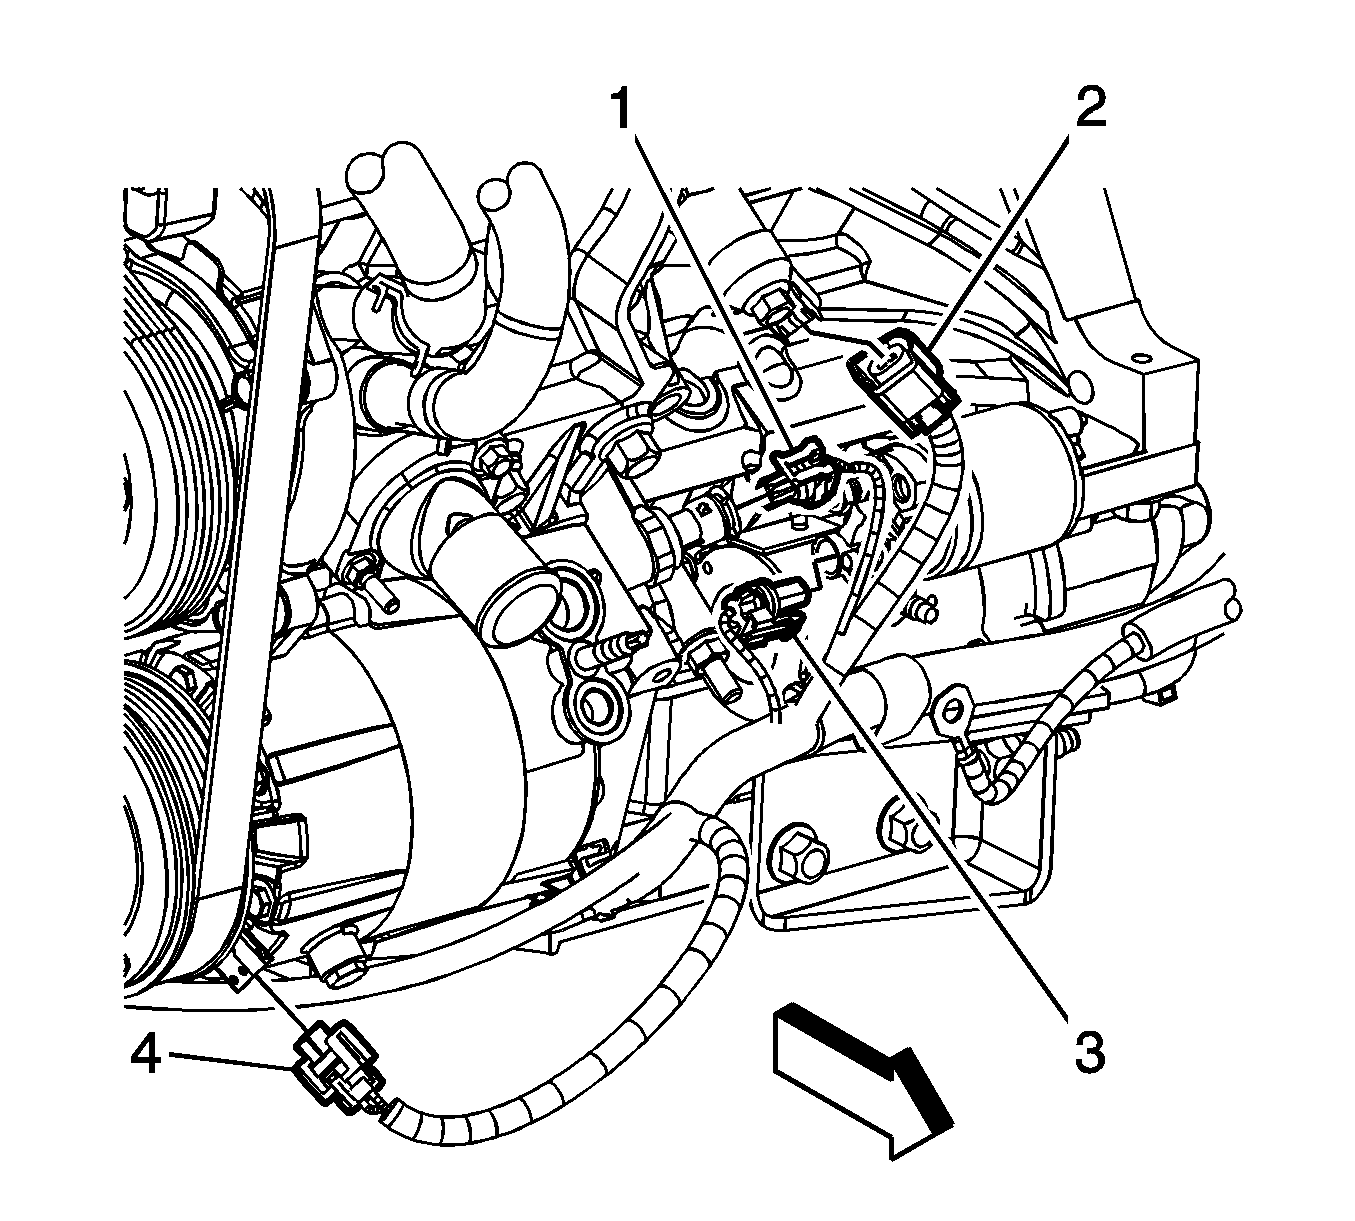 2010 Chevrolet Impala Engine Diagram Wiring Diagram Rub Activity Rub Activity Saleebalocchi It